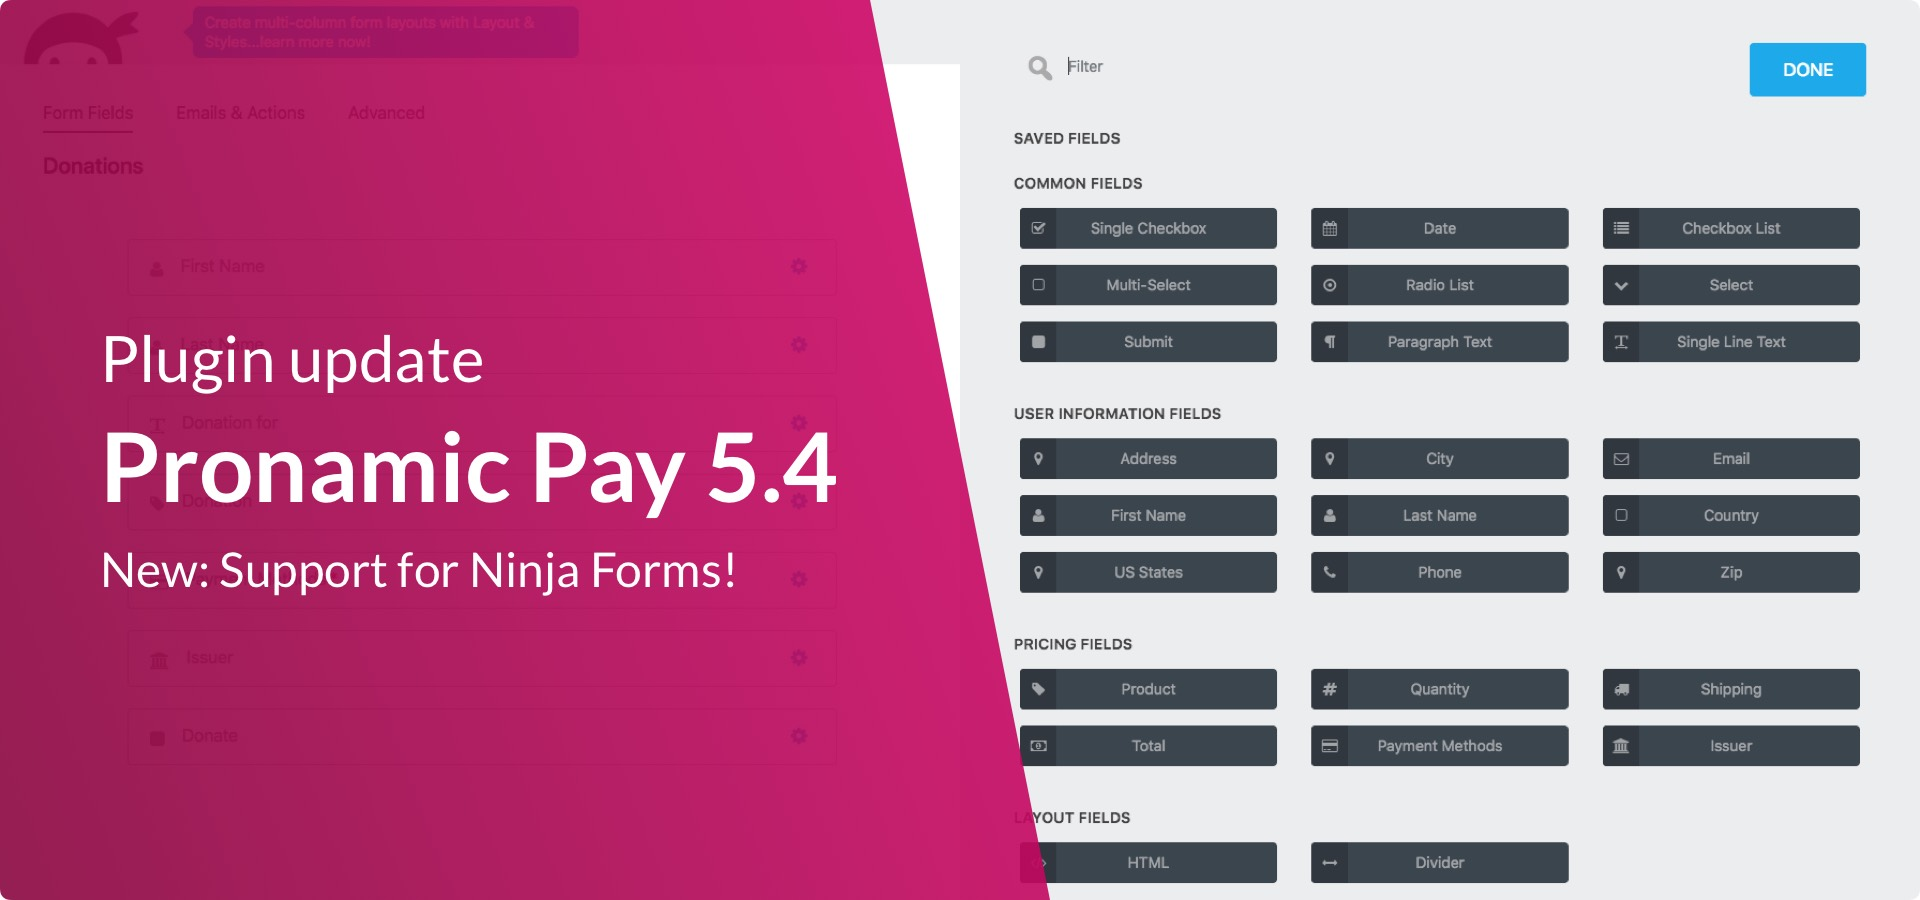 Pronamic Pay 5.4 Ninja Forms